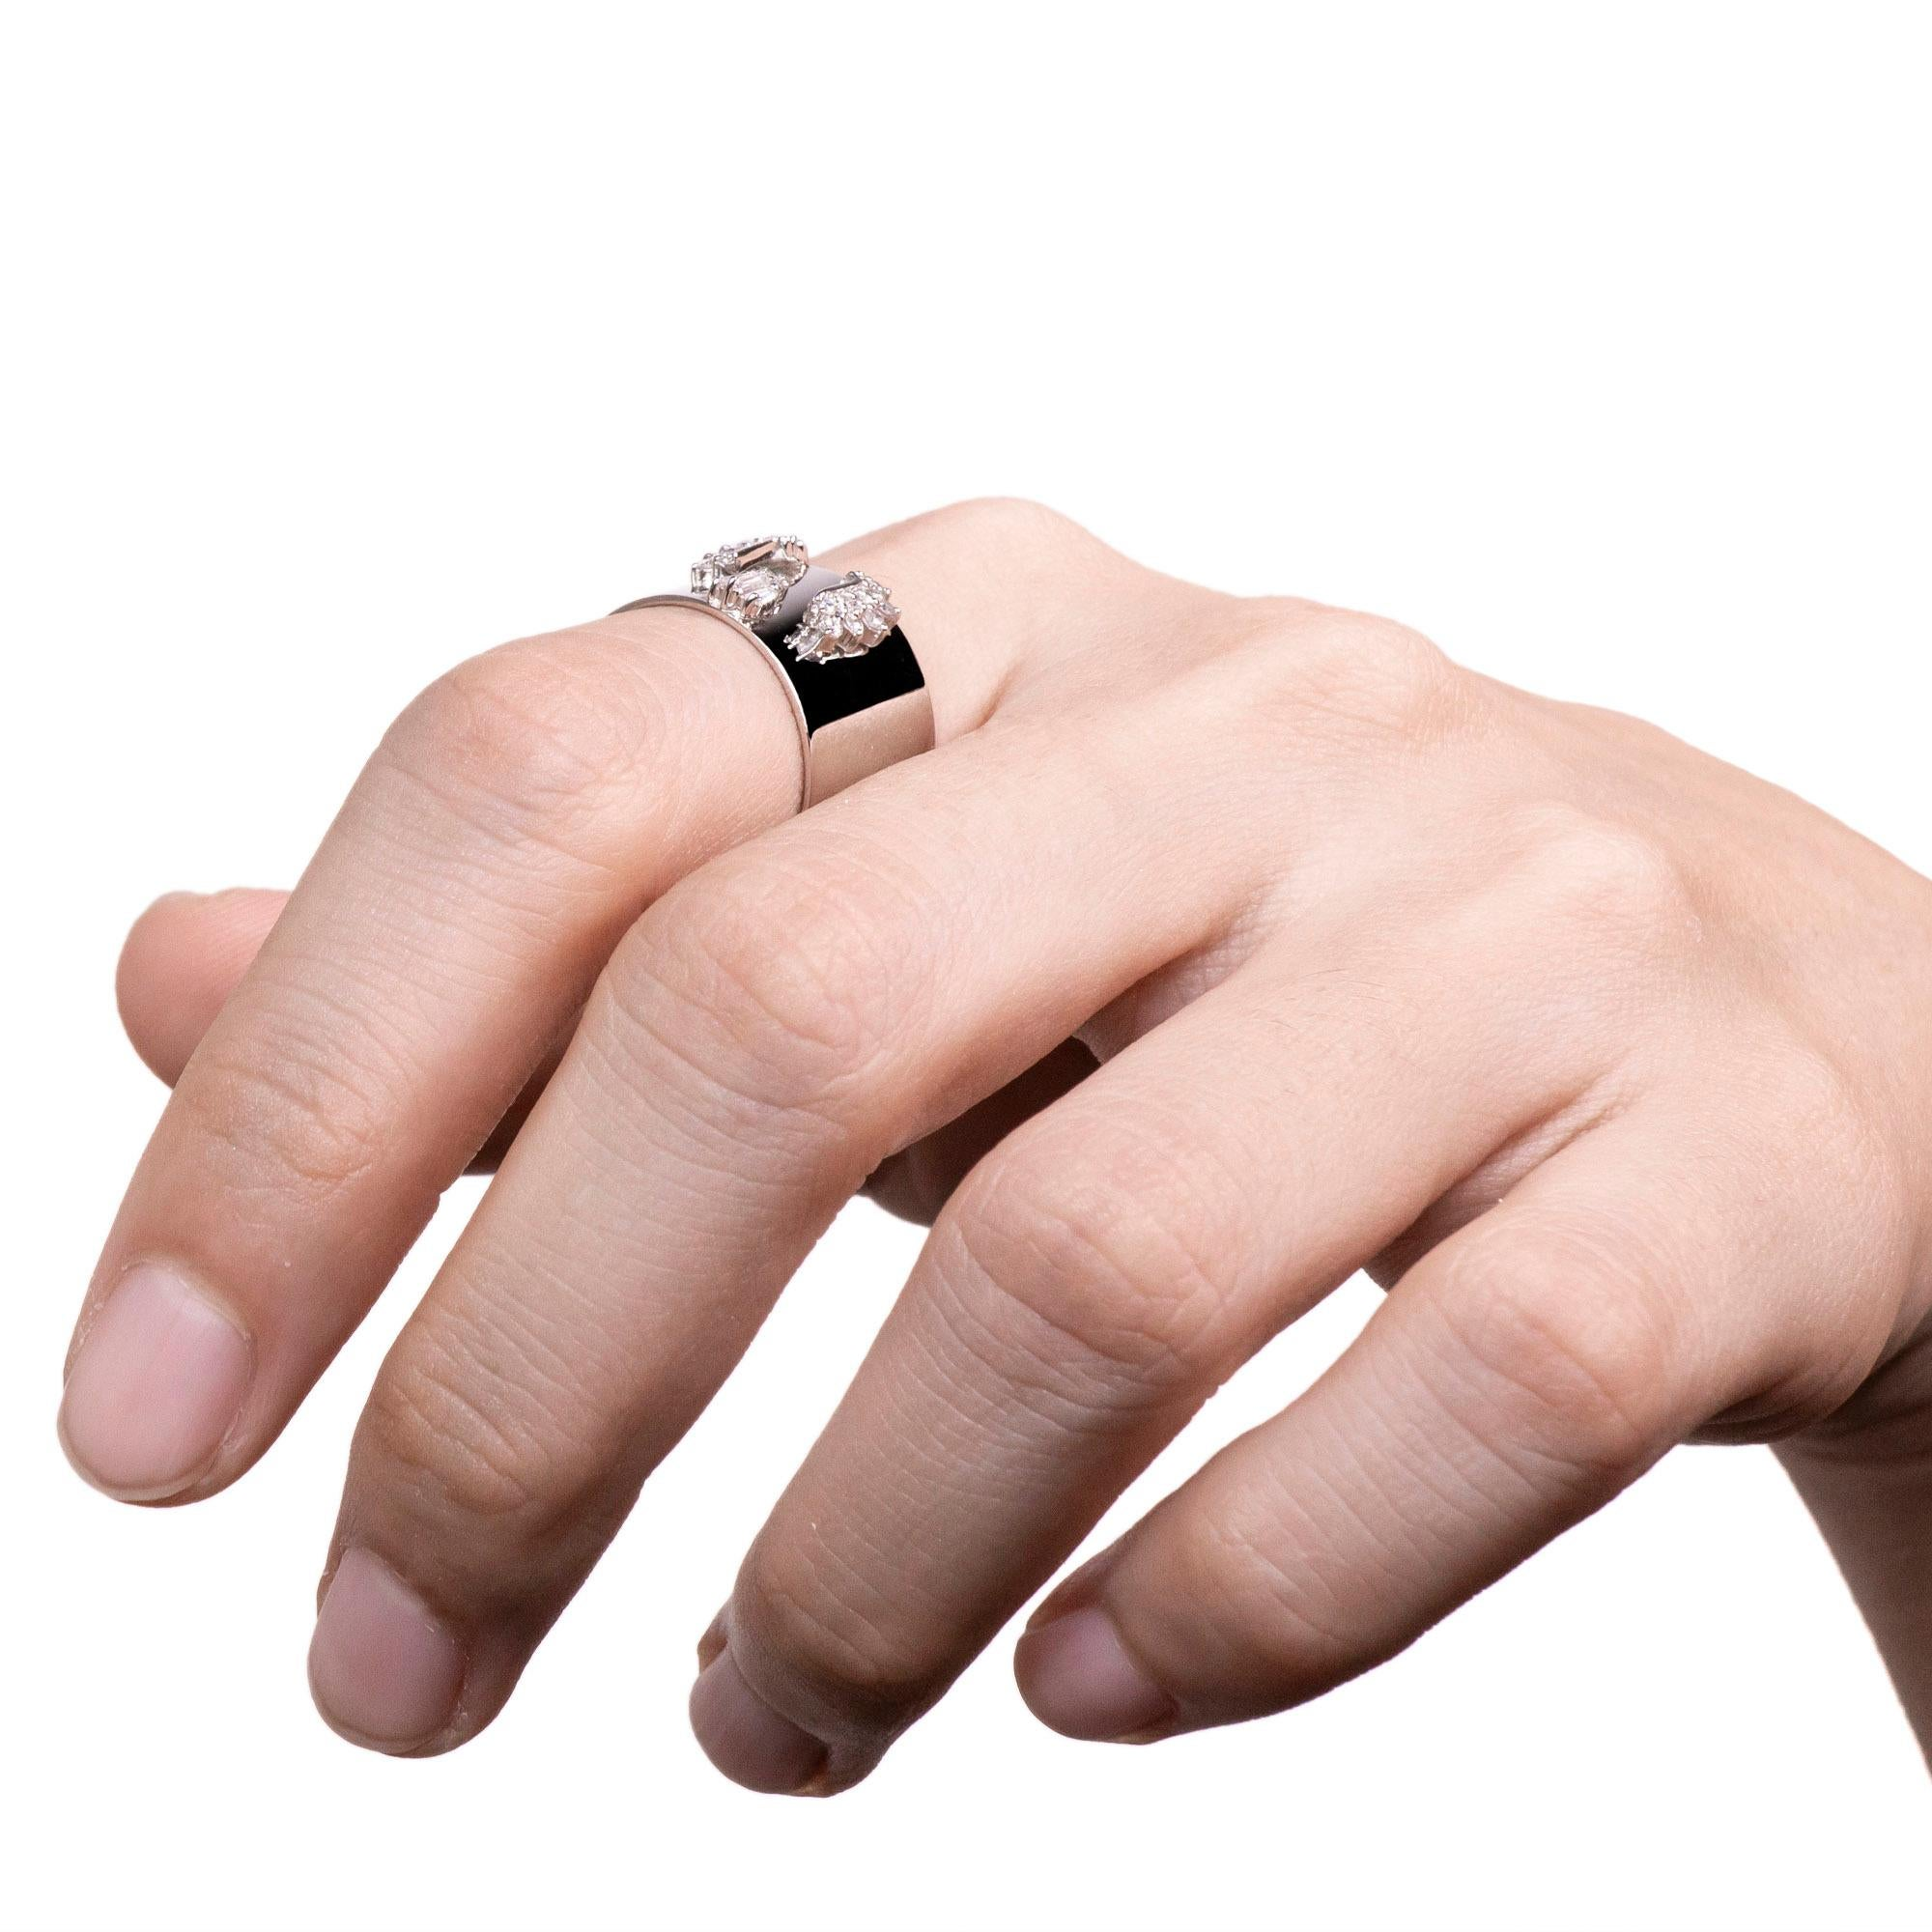 Diamond 0.250 Carat Platinum Wide Band Ring For Sale at 1stdibs